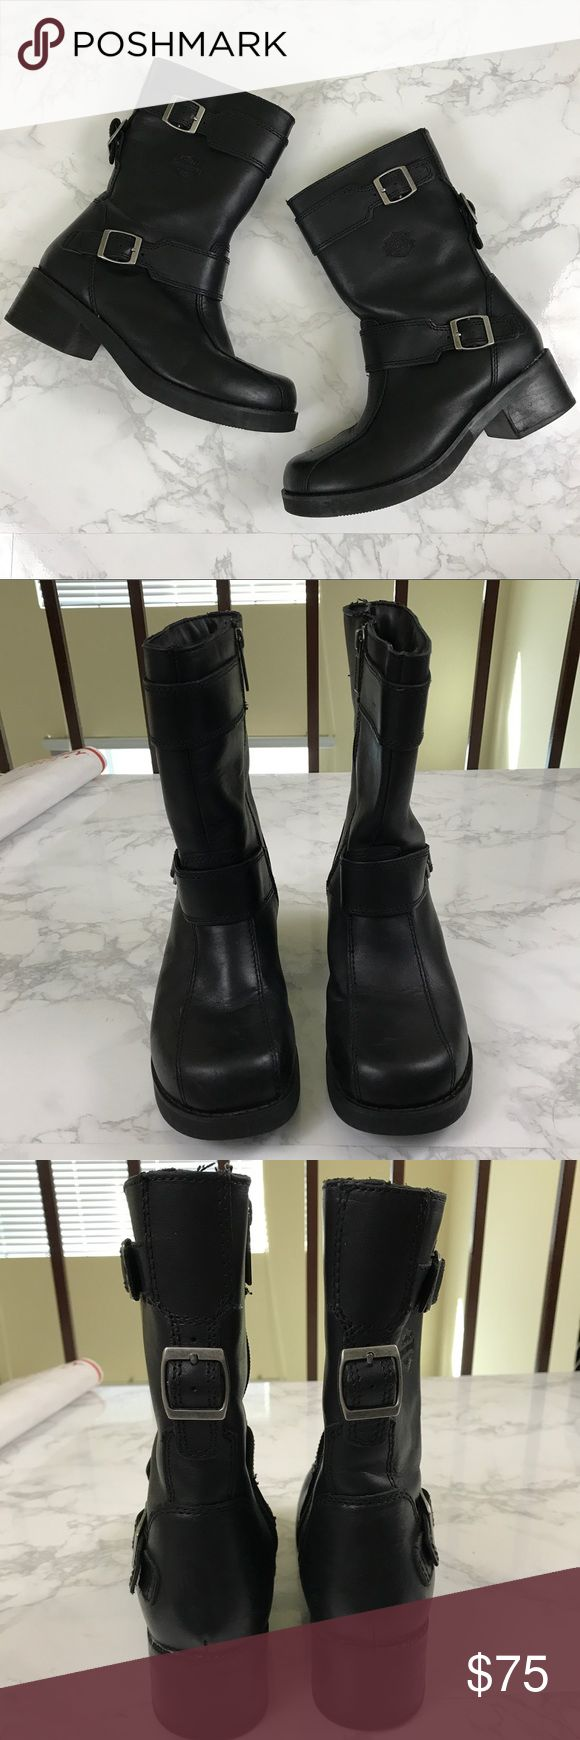 Vintage Harley Davidson Leather Black Boot Vintage Harley Davidson Motorcycle boots  * Size 6.5- Fits true to size * Length goes up to mid calf * In excellent condition; only have been worn once or twice. * Genuine leather Harley-Davidson Shoes